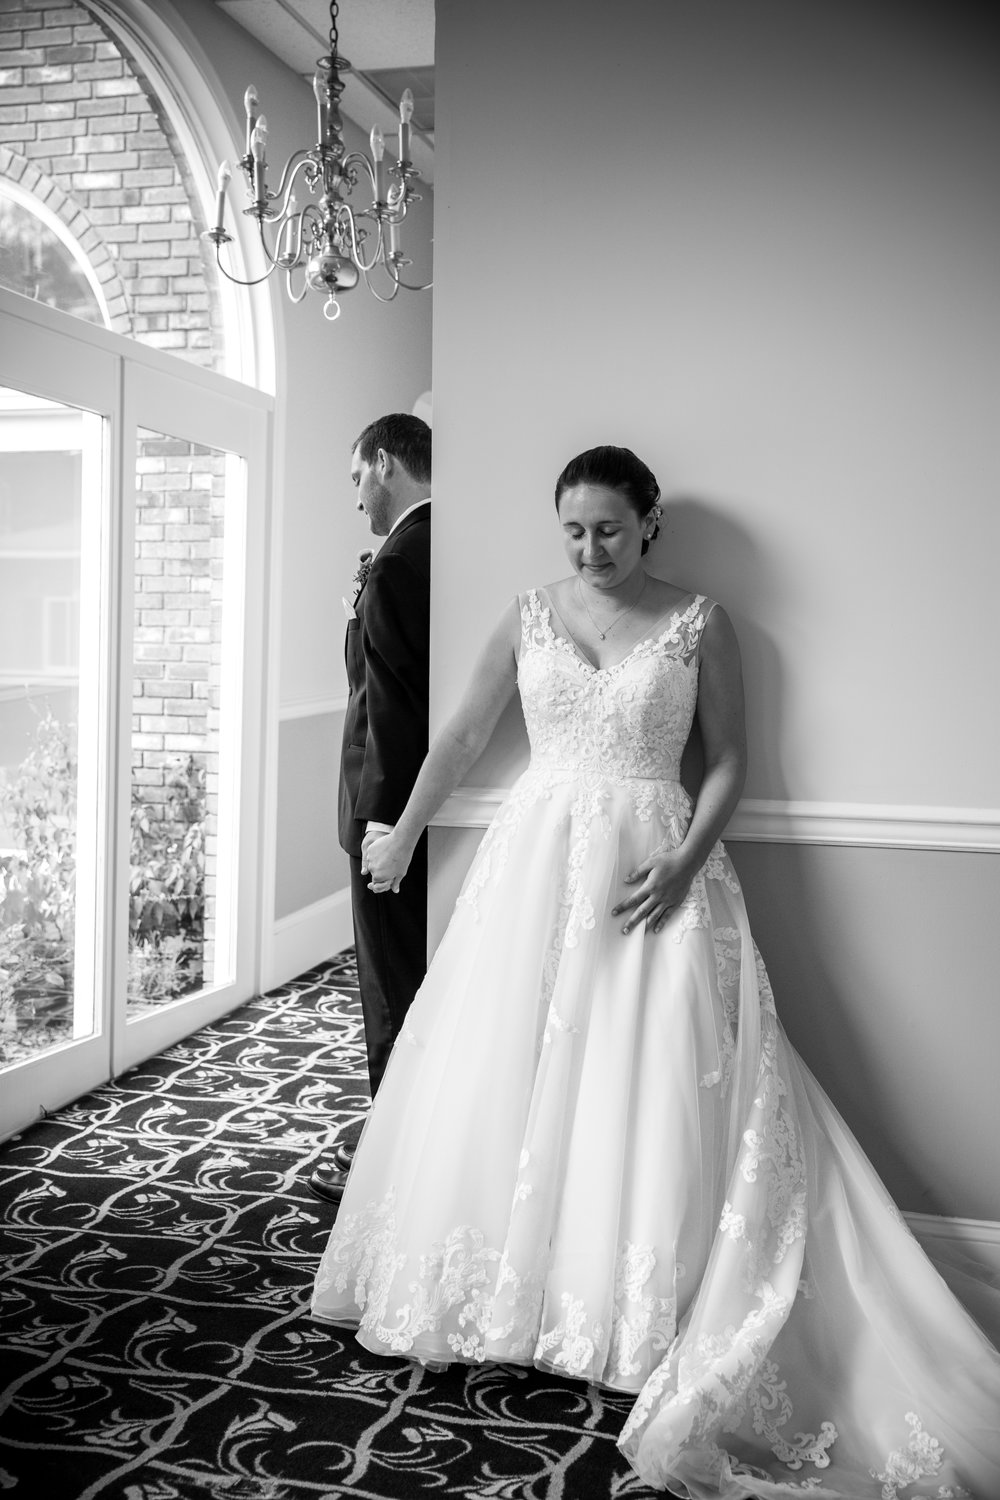 Hapeman Wedding 8.6.16-137.JPG